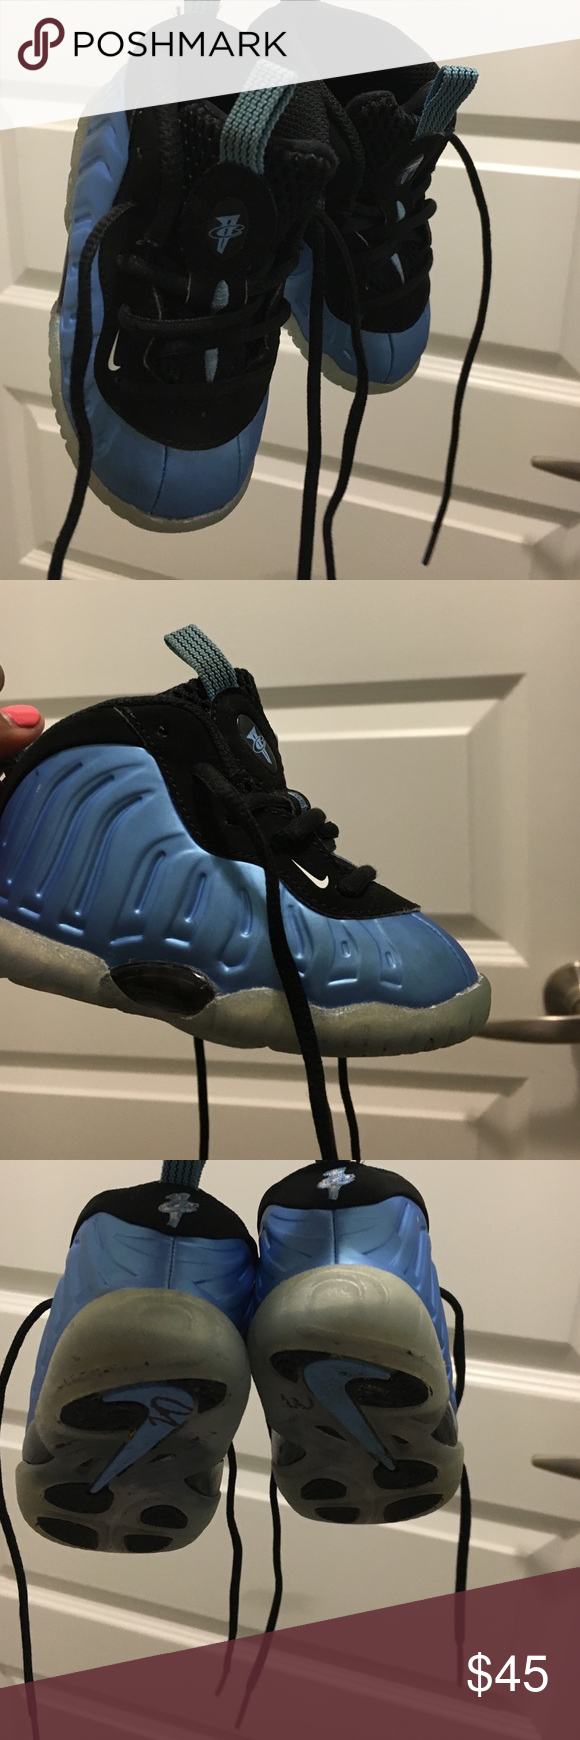 new style 24829 184a9 University blue (KIDS) FOAMPOSITES Nike Air Foamposite One ...